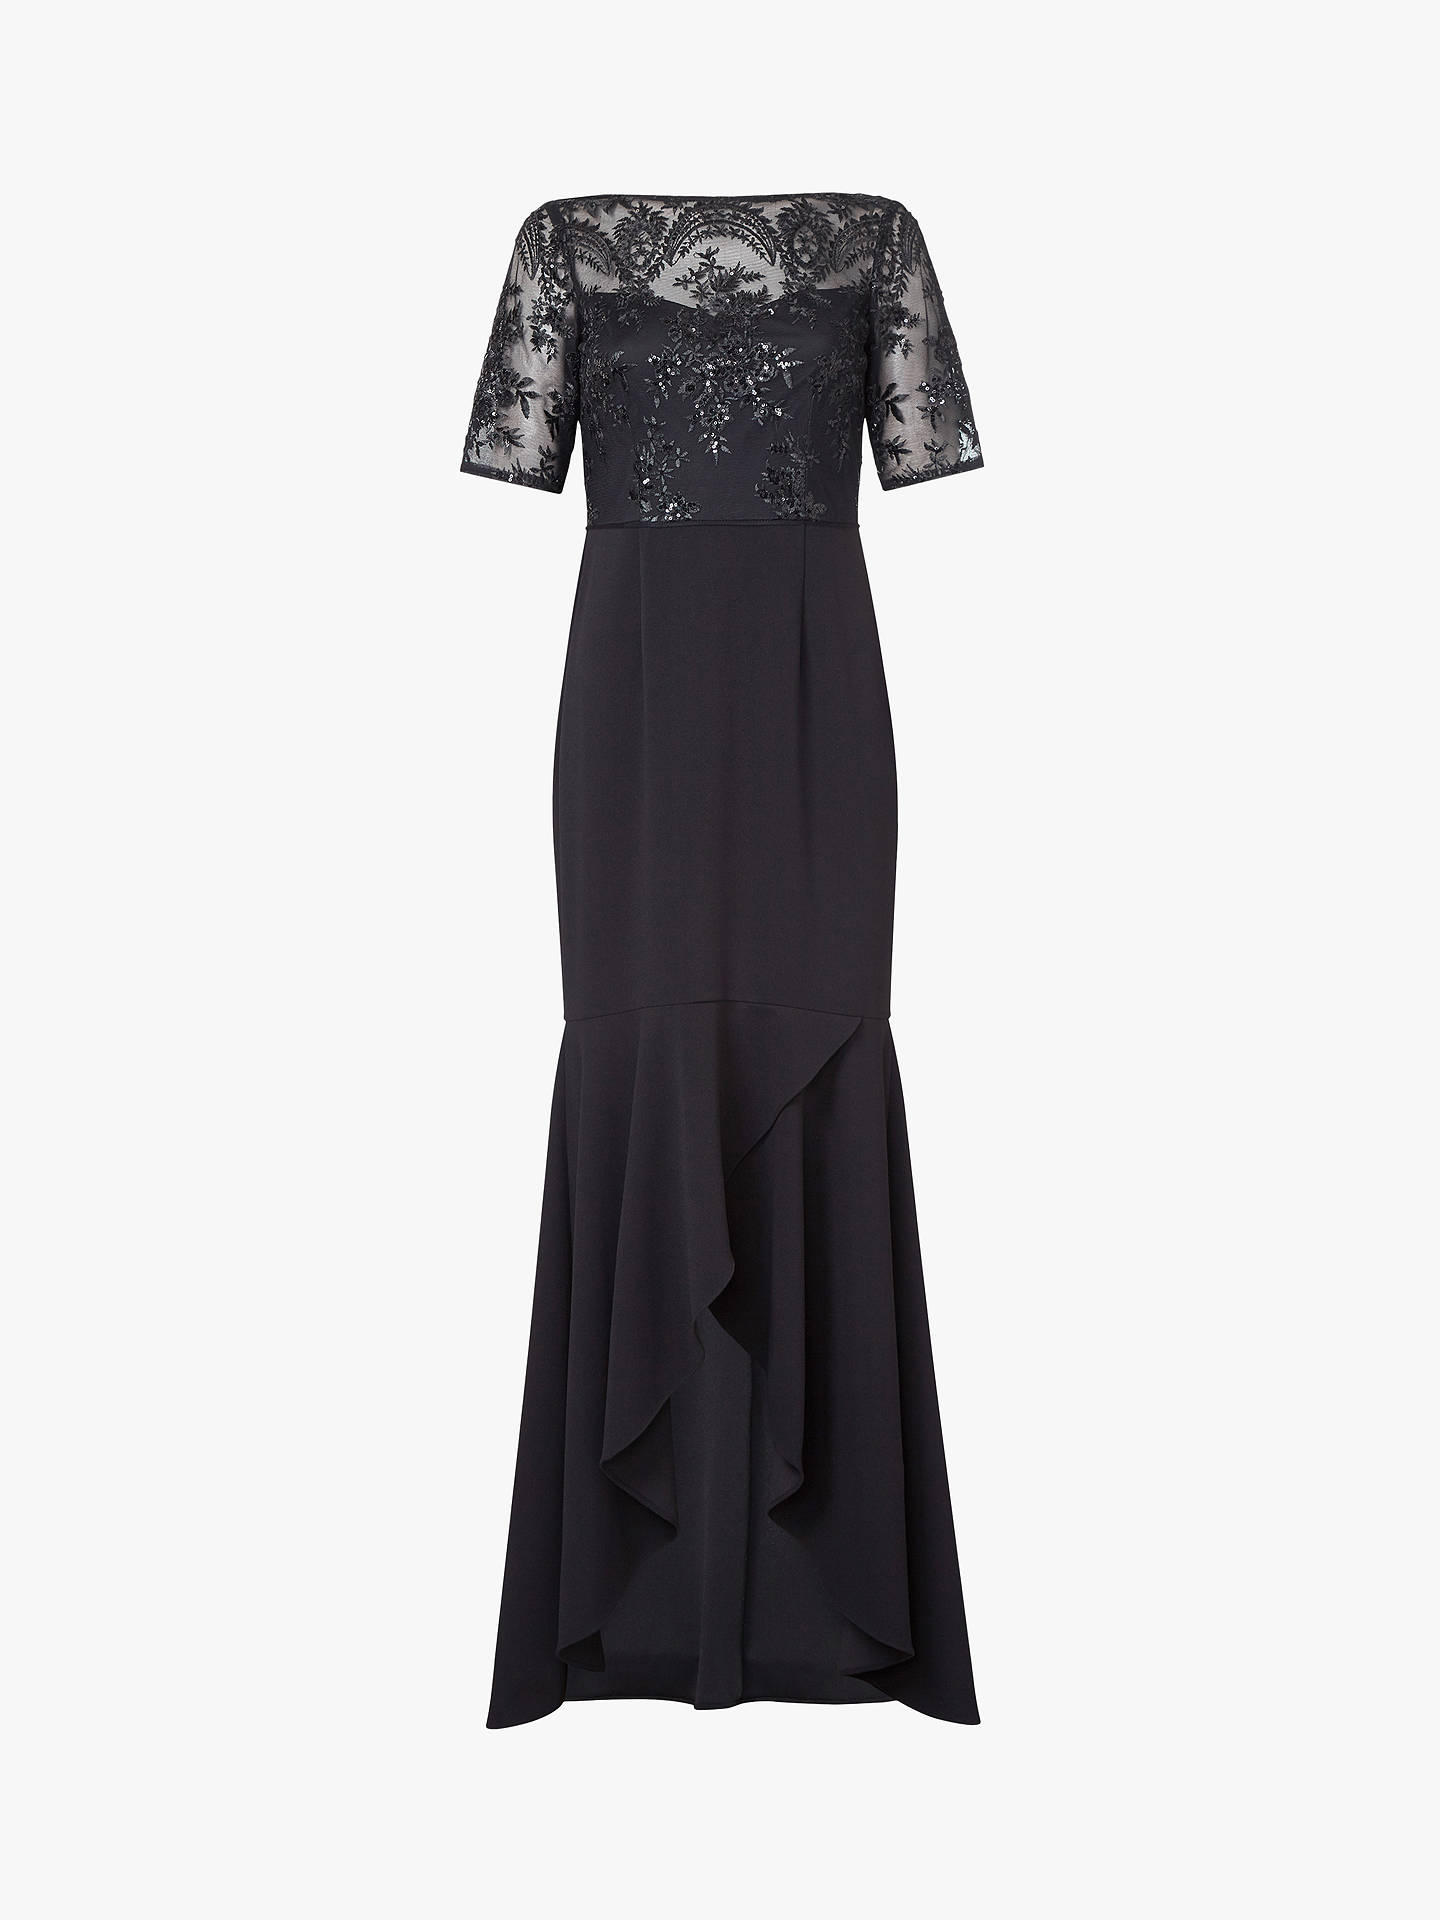 Buy Adrianna Papell Long Sequin Dress, Black, 24XL Online at johnlewis.com